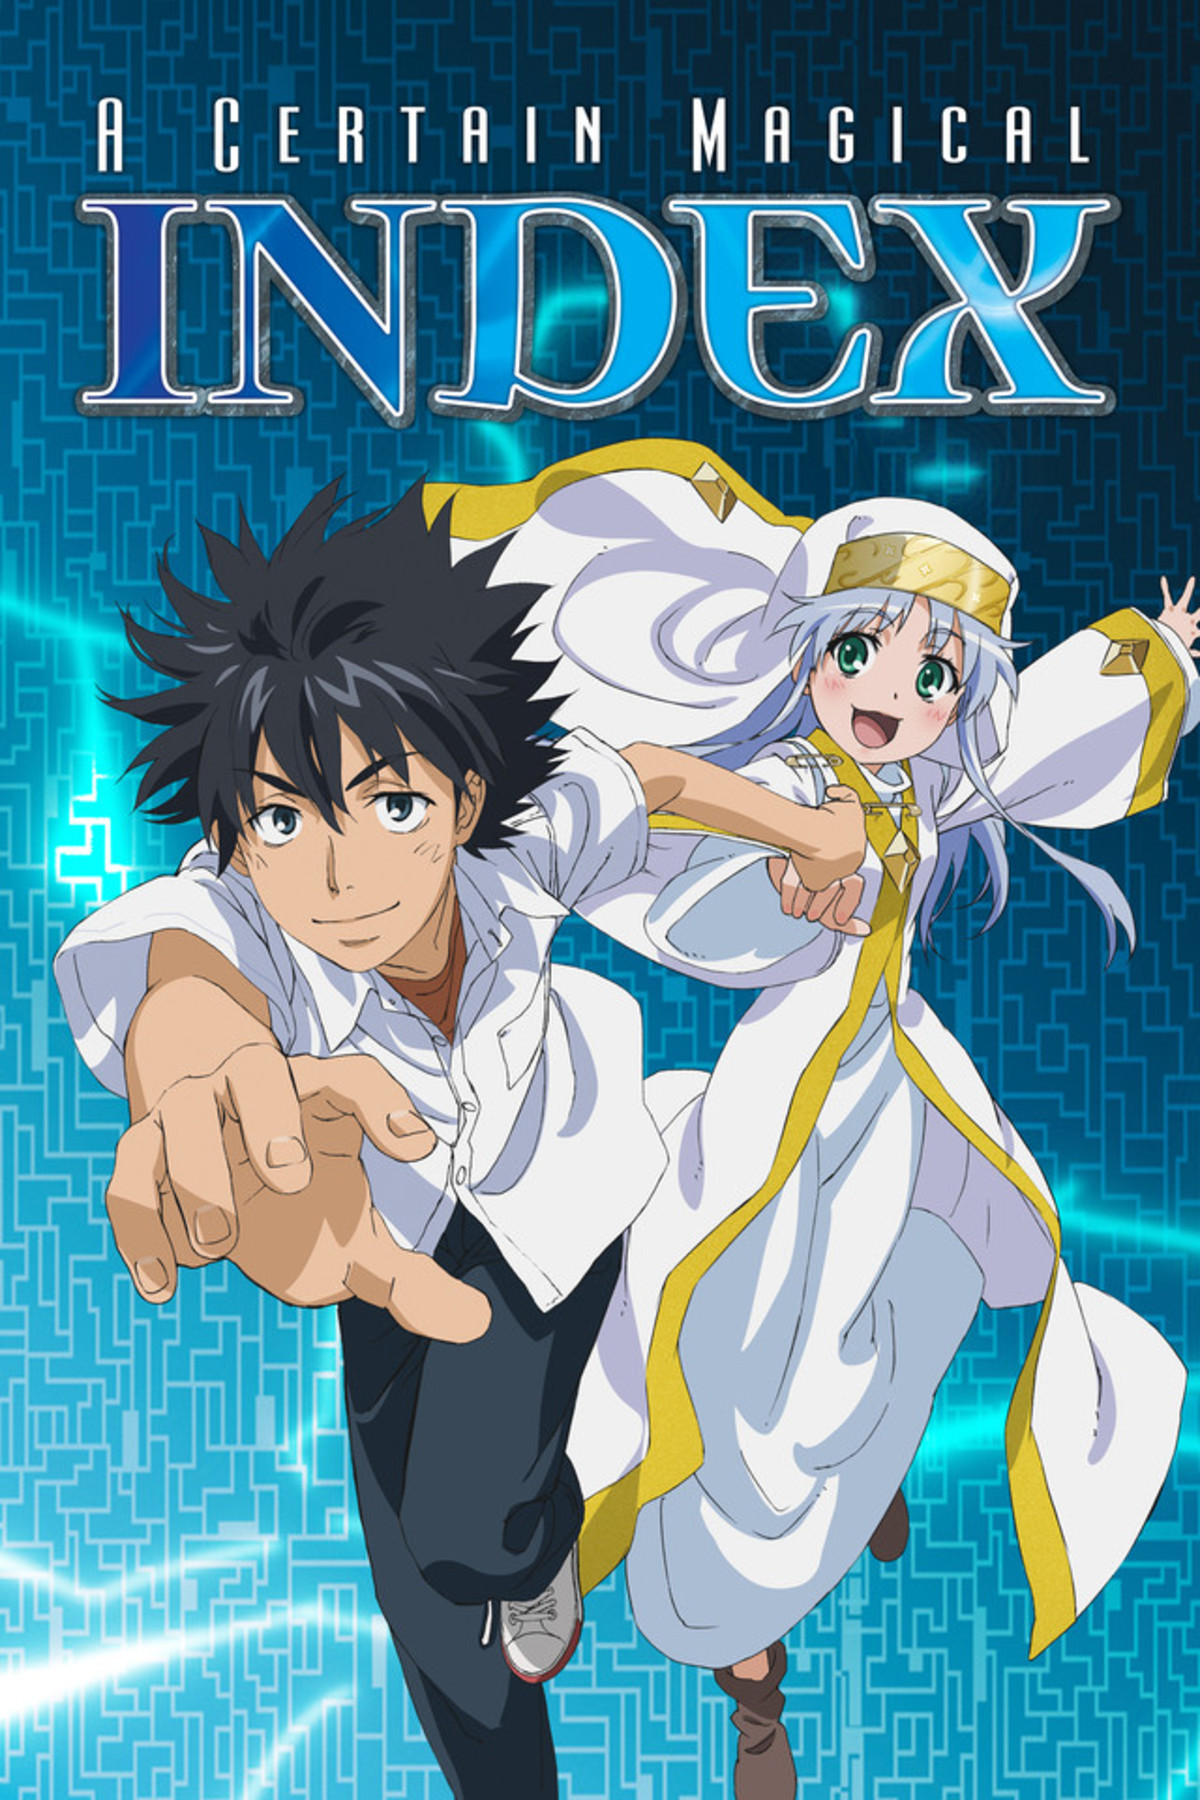 Overview #1: A Certain Magical Index. Allow me to be as simple as possible with this review, which is often very hard to do: This series is a strange combinatio